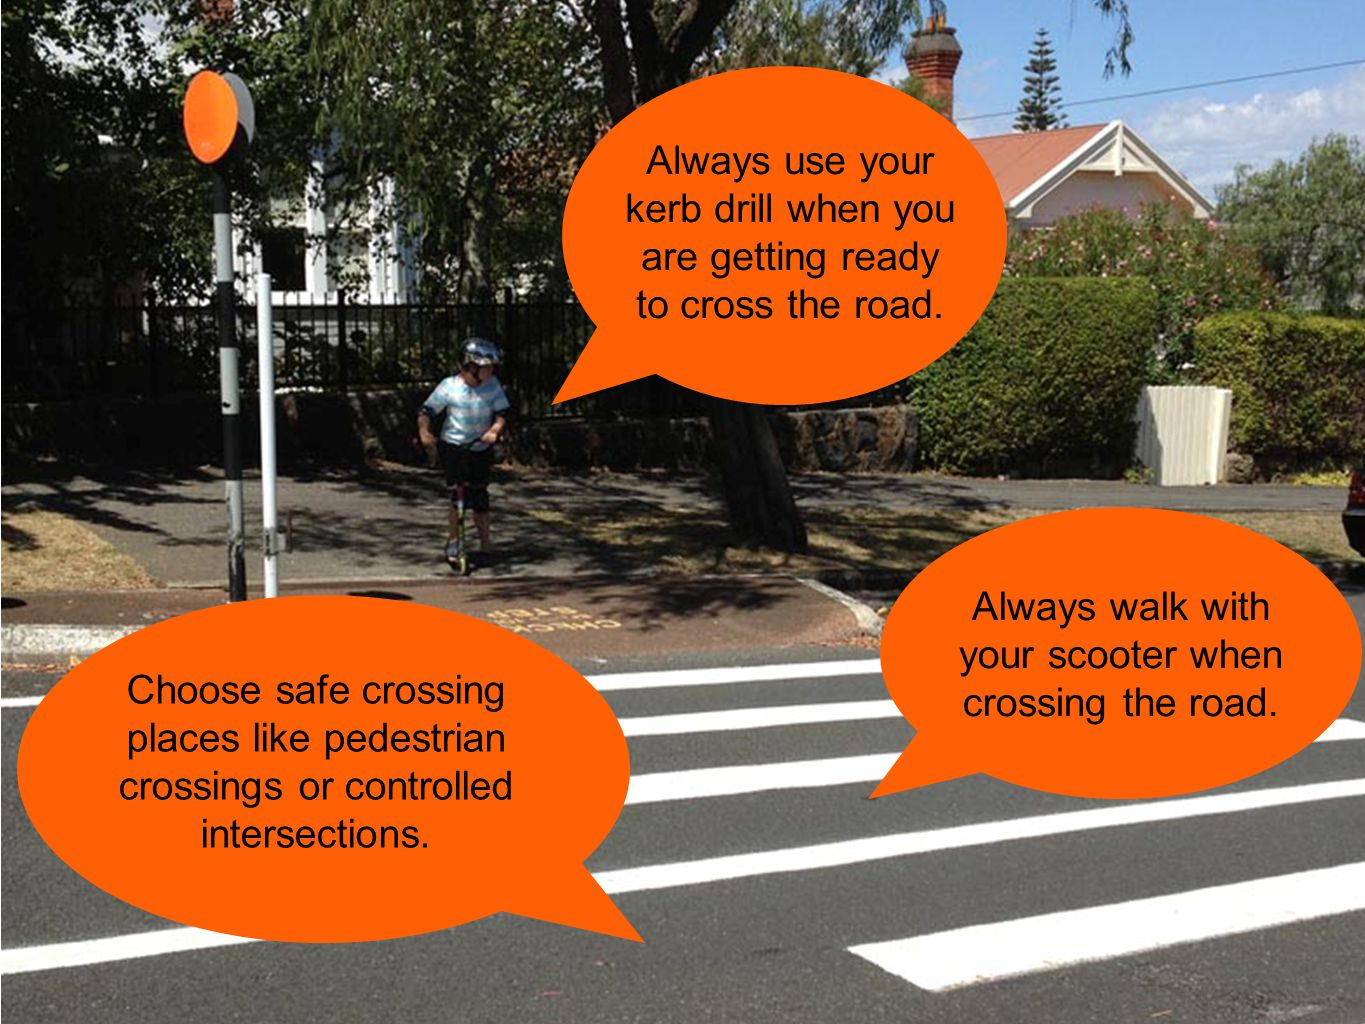 Always use your kerb drill when you are getting ready to cross the road. Choose safe crossing places like pedestrian crossings or controlled intersect